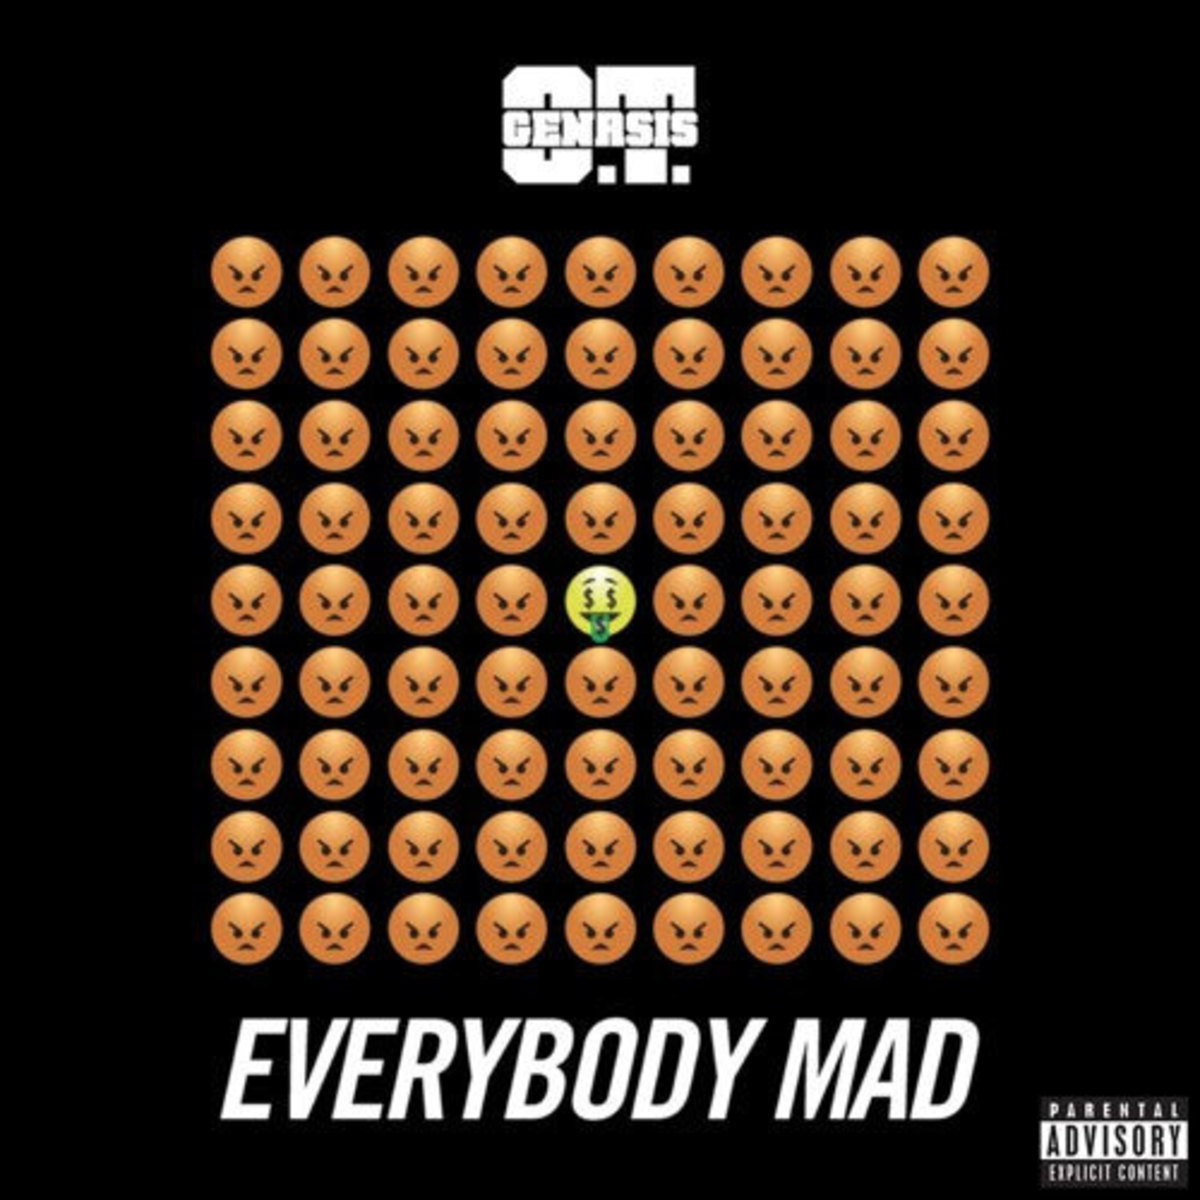 ot-genasis-everybody-mad.jpg